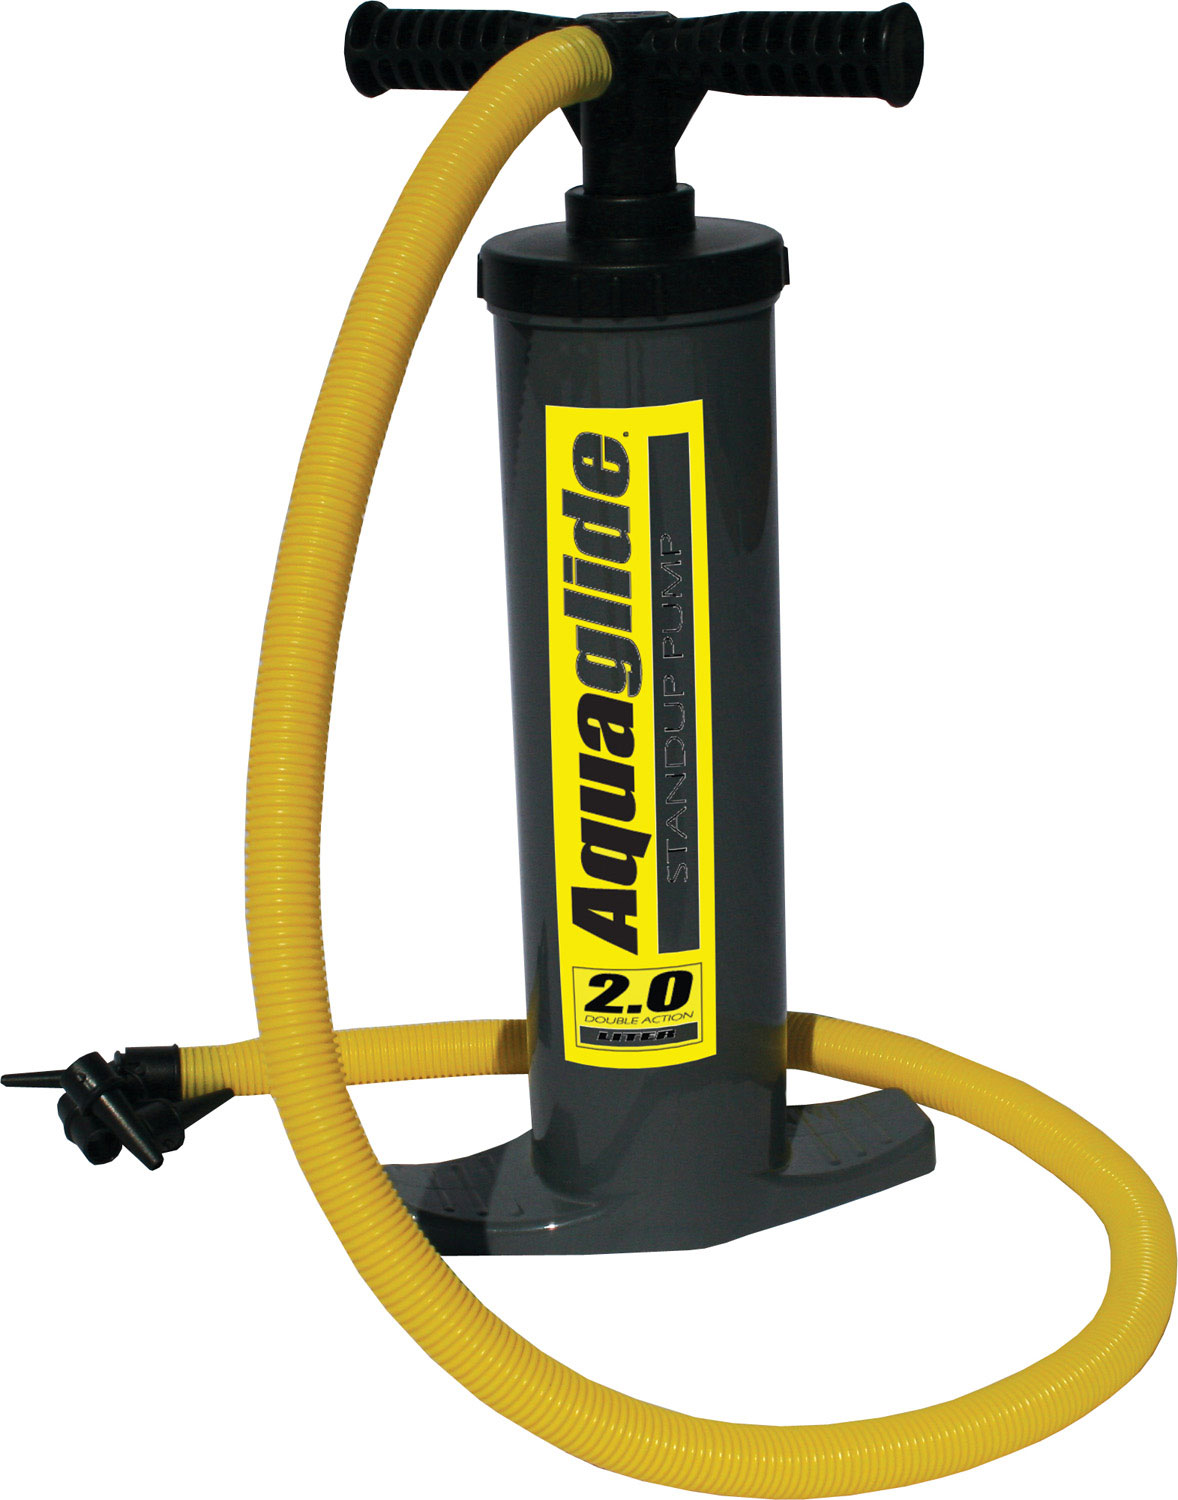 "Wake Double-action vertical push pump. The Push pump is an extremely versatile tool designed for watersports enthusiasts. Double-action feature pushes air on both the up and downstroke to quickly inflate items to moderate air pressure (2.6 psi max). Handy for topping off air pressure. By keeping the air intake high, this high-volume pump works well on any surface (even sand). Includes Kink-proof hose with attached fittings for Stem, Boston, Rapid Inflate, Fish Eye, and Halkey-Roberts valves. 12""W x 10""L x 24""H: Manual Pump - $35.95"